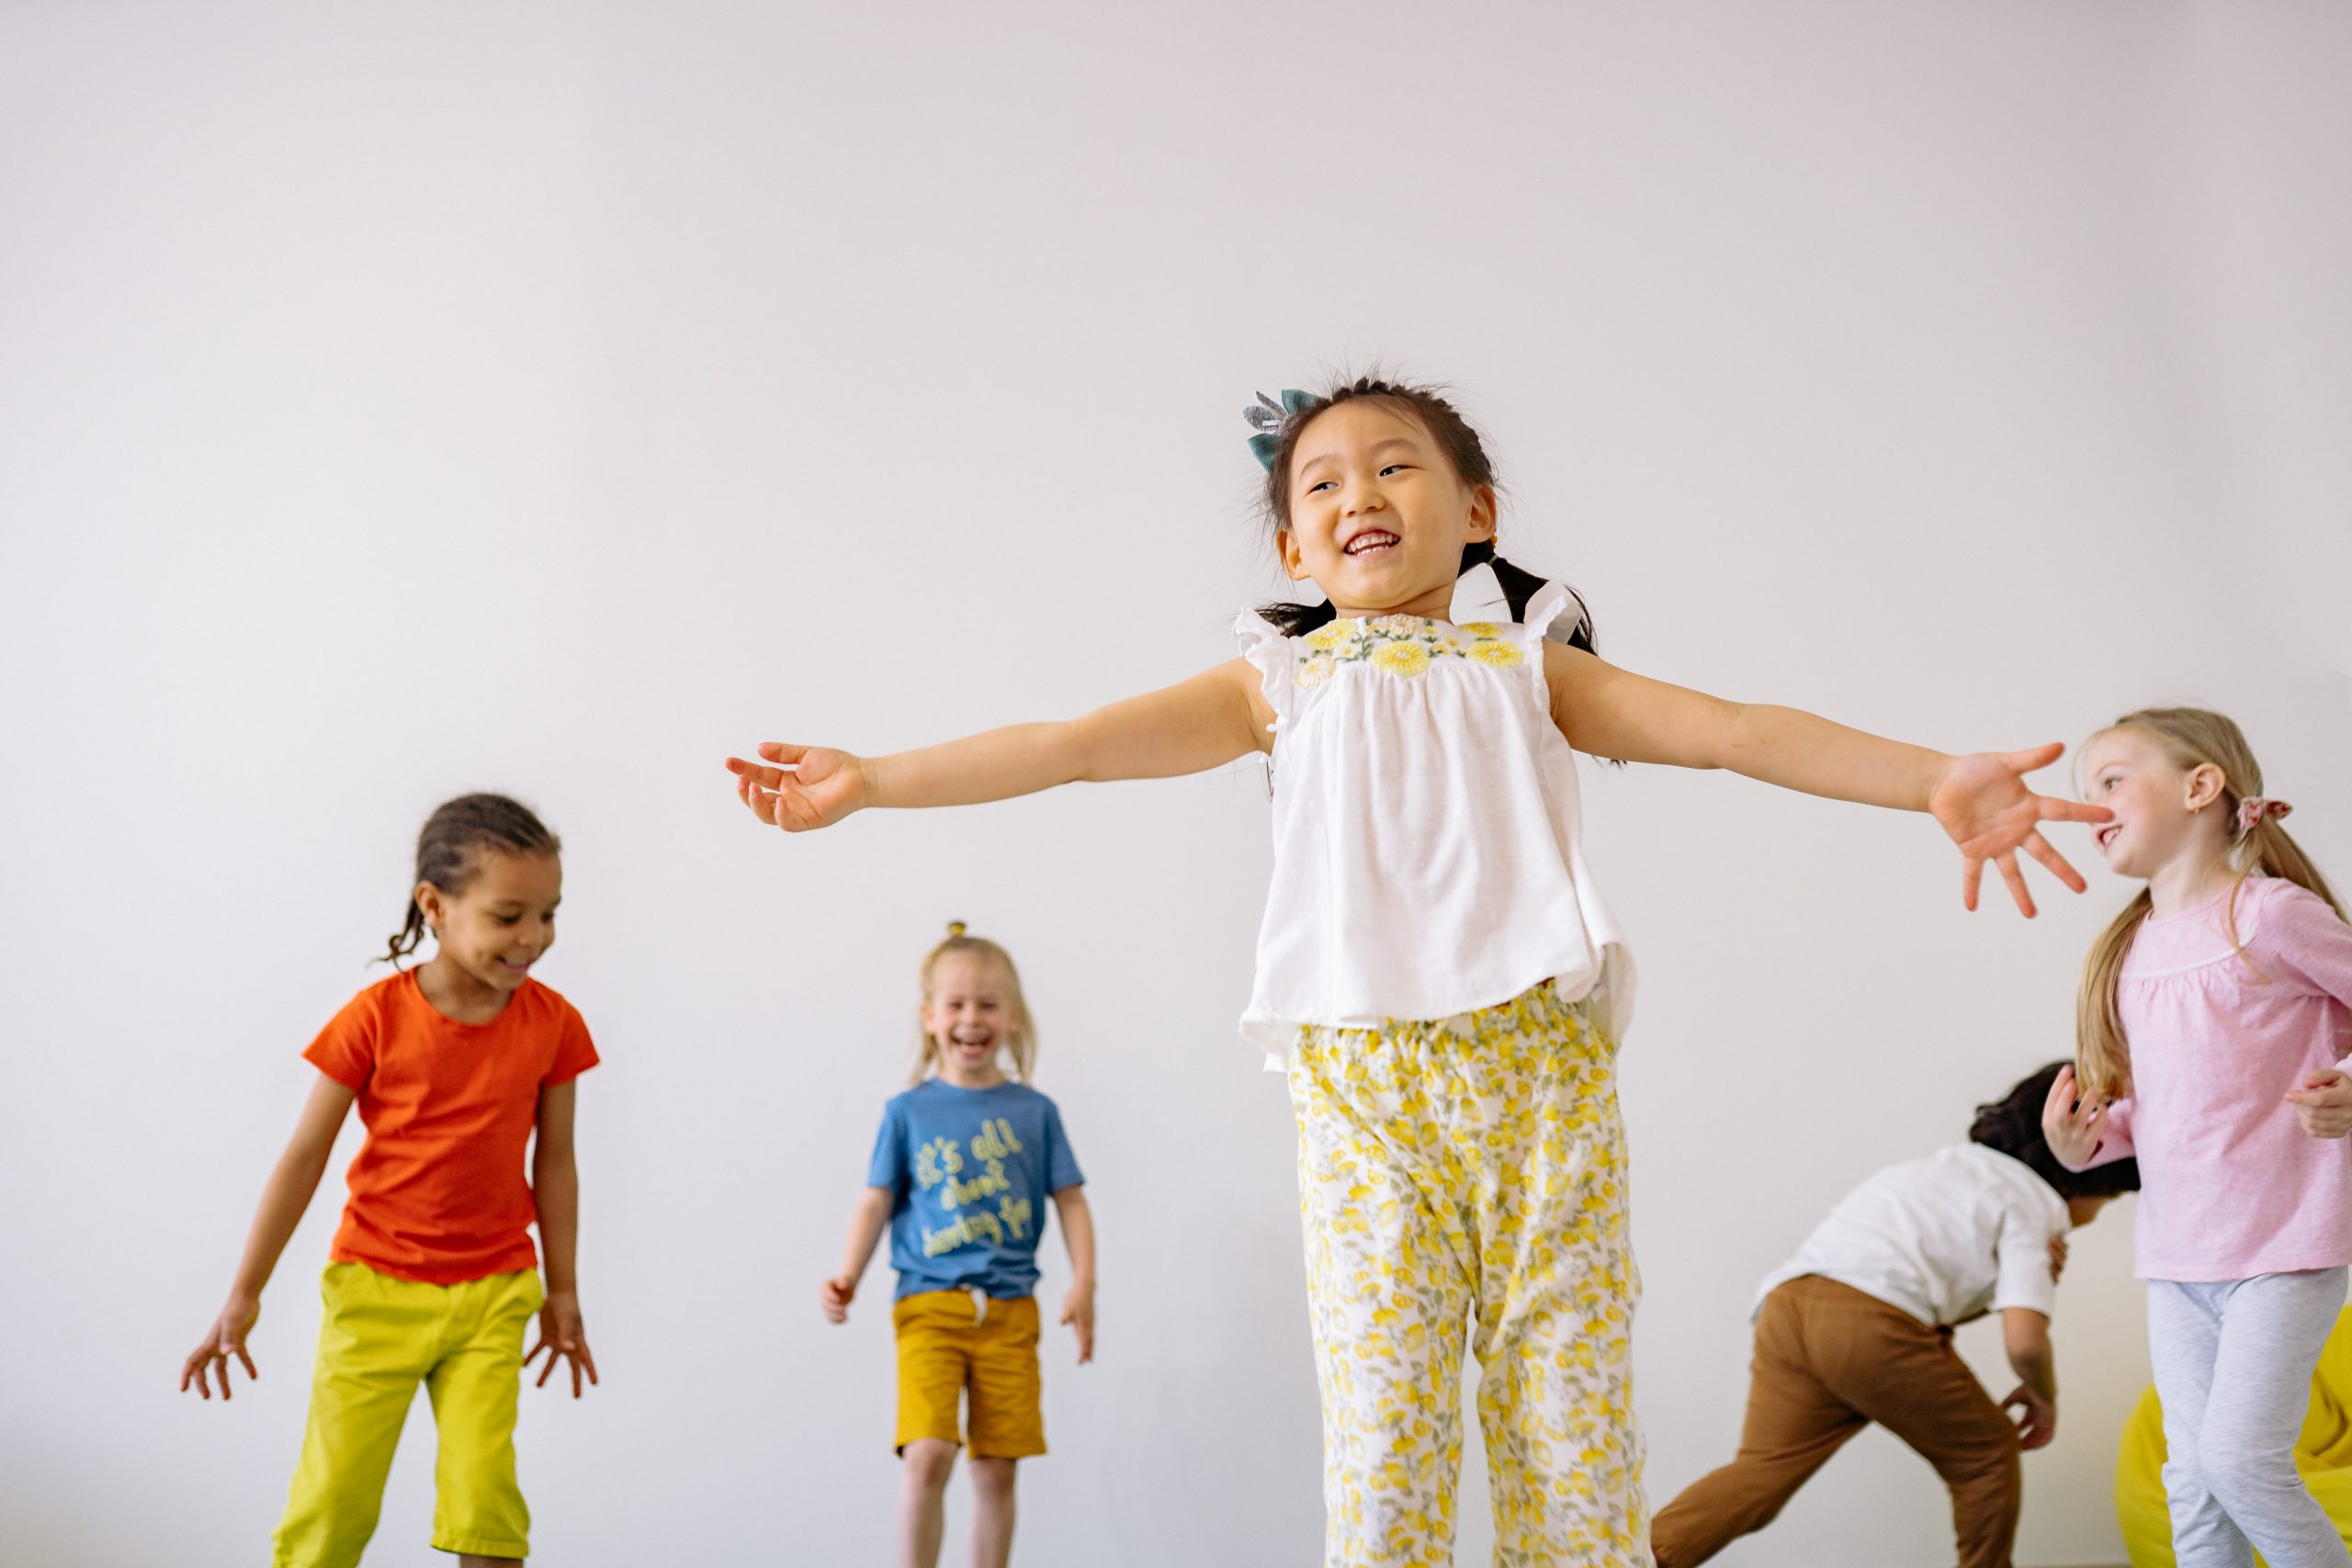 A group of five children jumping and dancing. Behind them is a white backdrop. The girl in the center is wearinga. white shirt and light yellow pants. The girl on the left is wearing a red shirt and mustard yellow pants. Next to her a girl is wearing a blue shirt and dark yellow shorts. Next to her a girl is crouched. She is wearing a white long sleeve shirt and brown bands. Next to her is a girl wearing a pink long sleeve shirt and. light blue leggings. Family YMCA of the Desert Dance page.